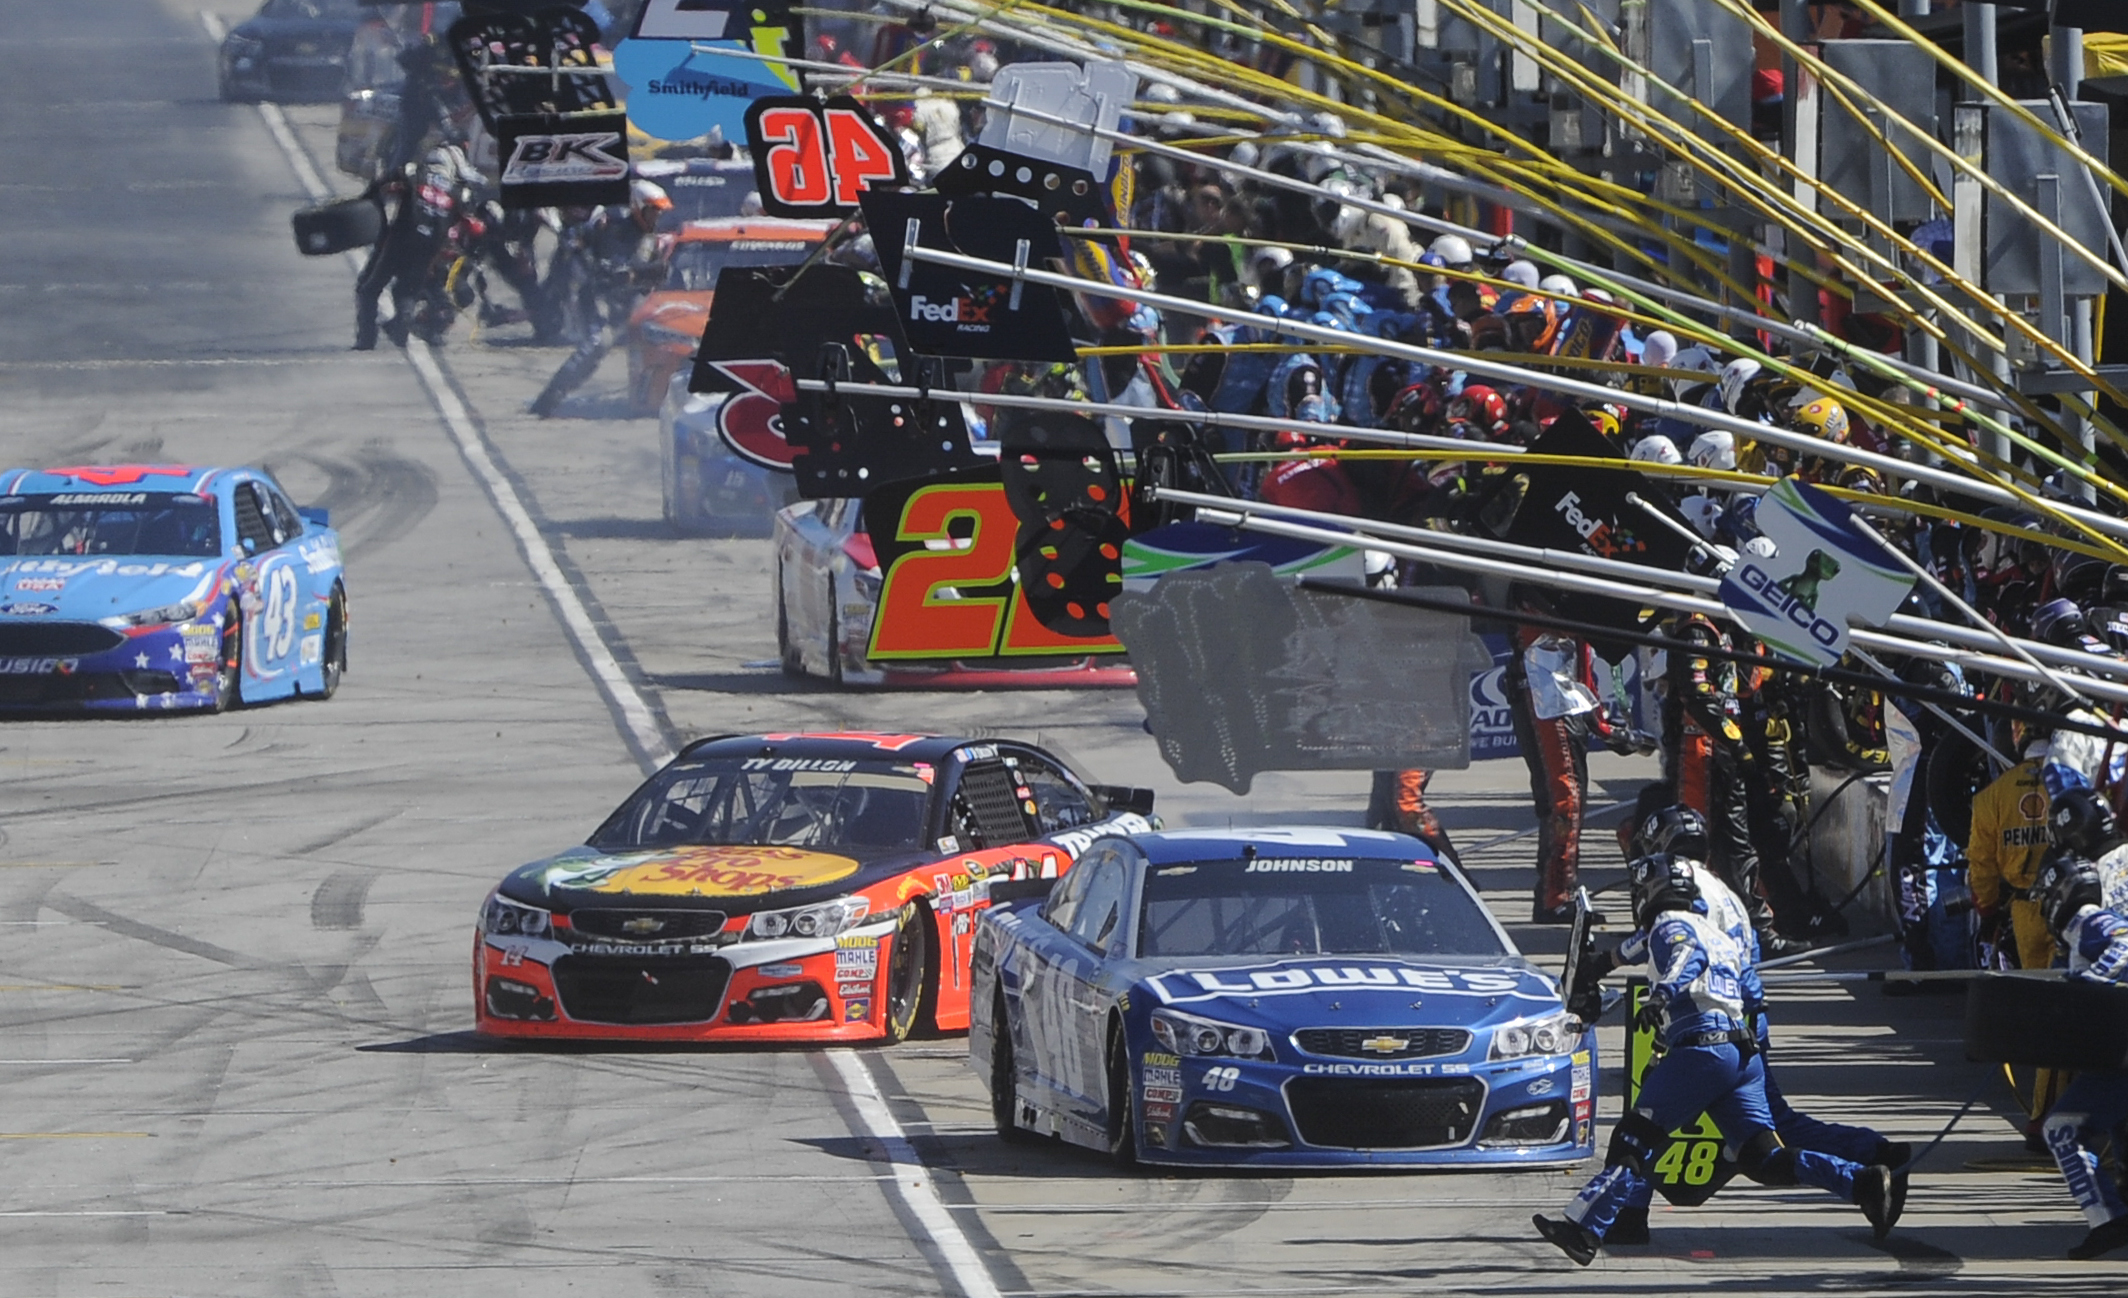 Jimmie Johnson,front  right, comes into the pit, as Ty Dillon pulls out behind during a NASCAR Sprint Cup Series auto race at Atlanta Motor Speedway, Sunday, Feb. 28, 2016, in Hampton, Ga. (AP Photo/John Amis\)